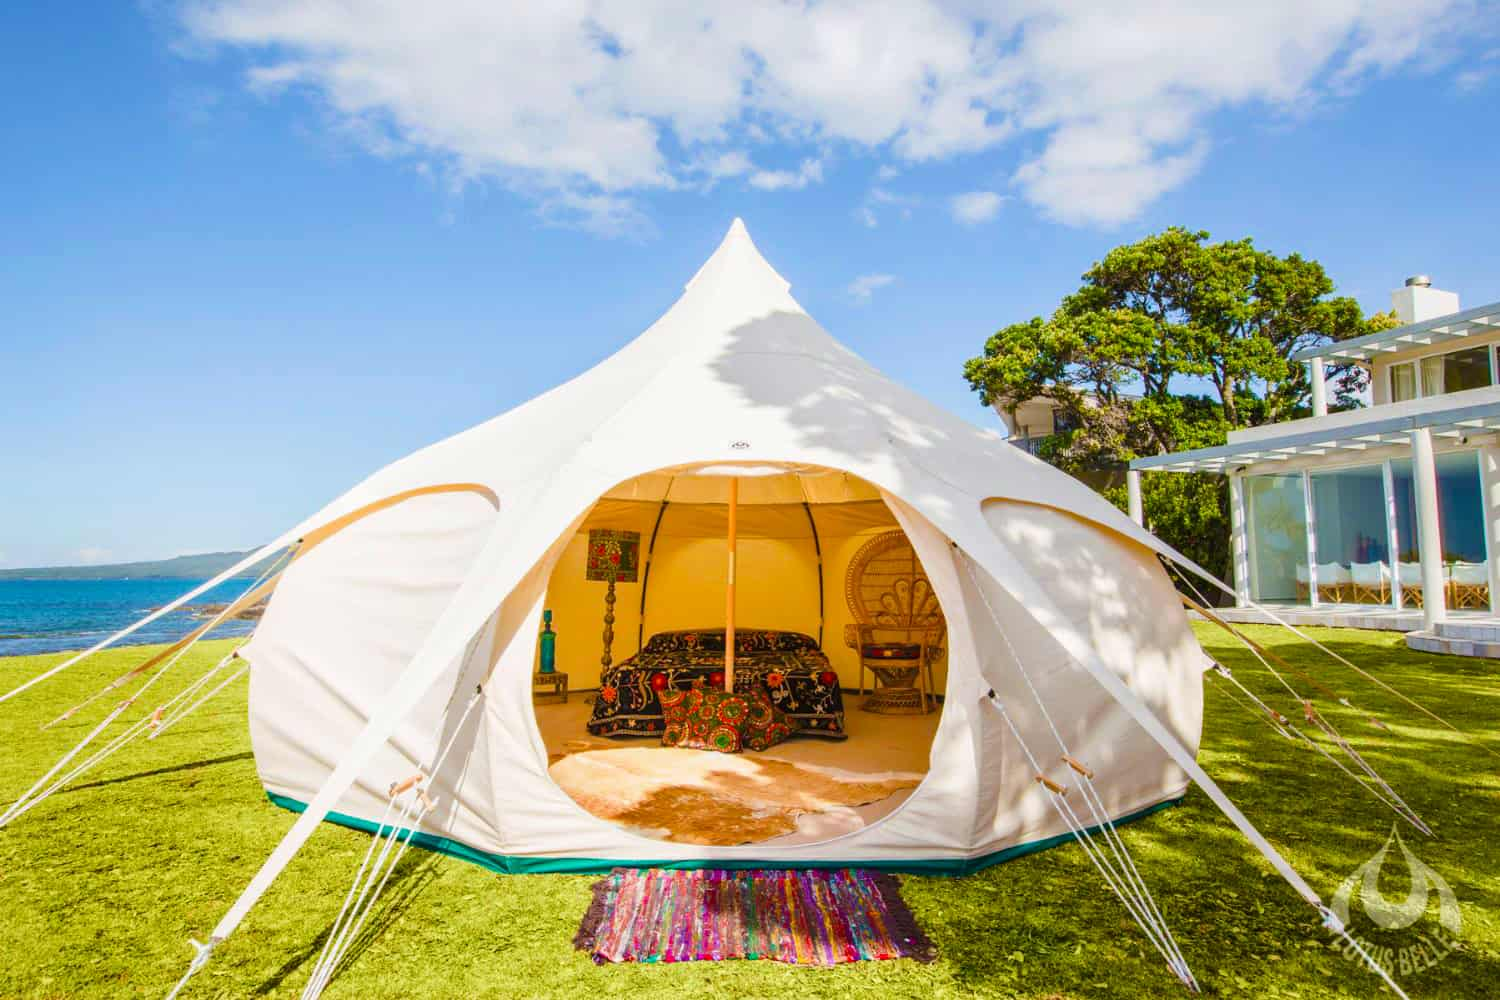 Lotus Belle Original 16ft Tent Stylish Outdoor Structure and Additional Guest Room in the Garden